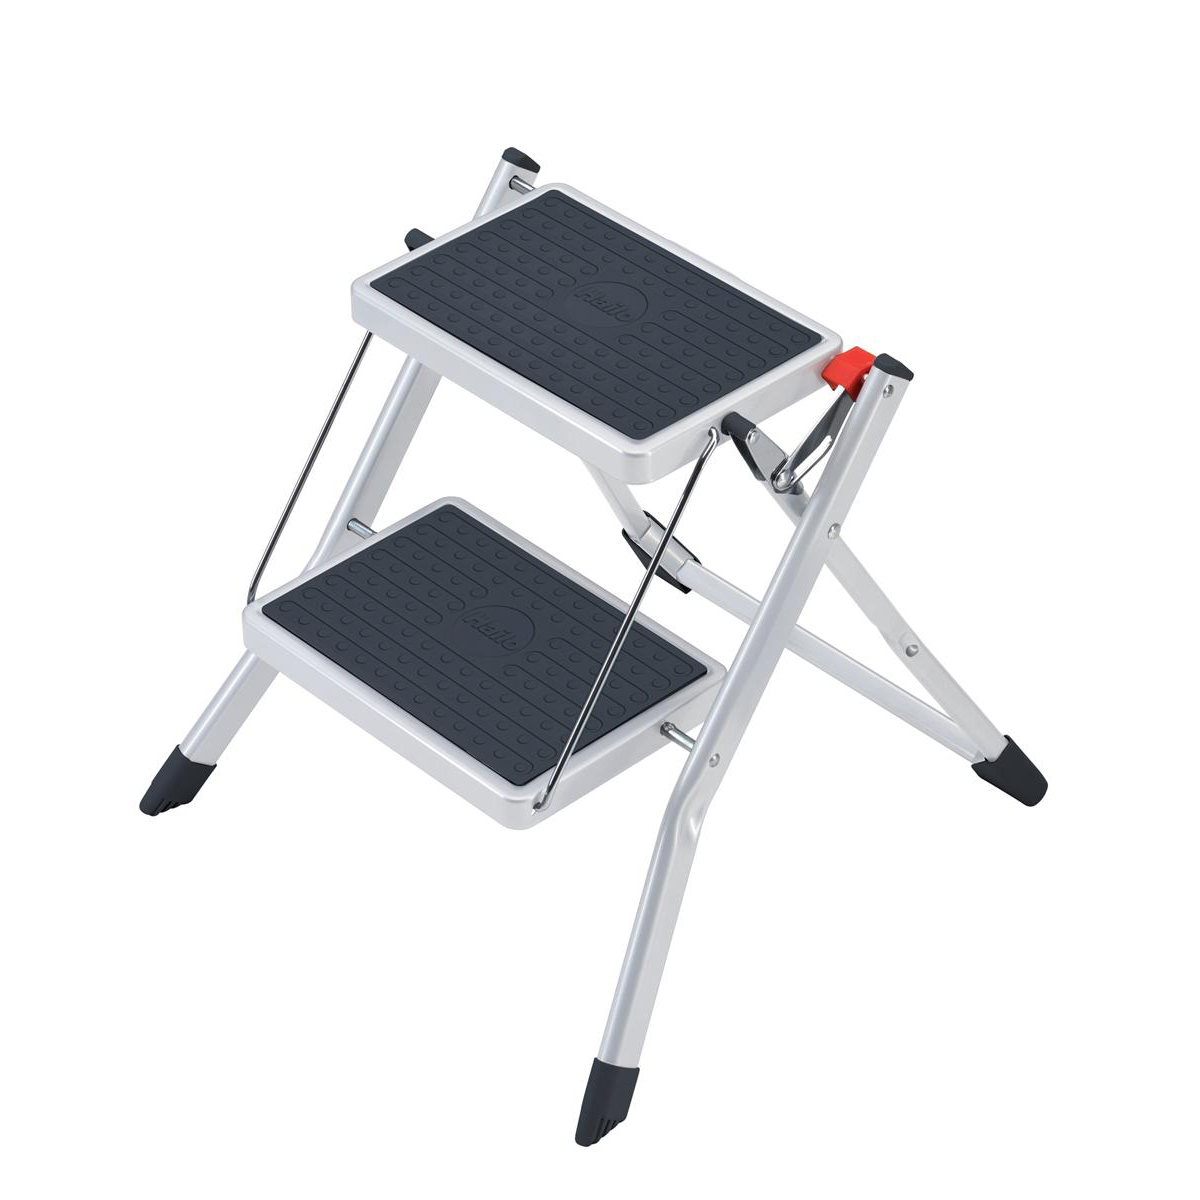 Image for 5 Star Facilities Mini Stool/Ladder Two Step Steel Folding Single Sided Load Capacity 150kg White